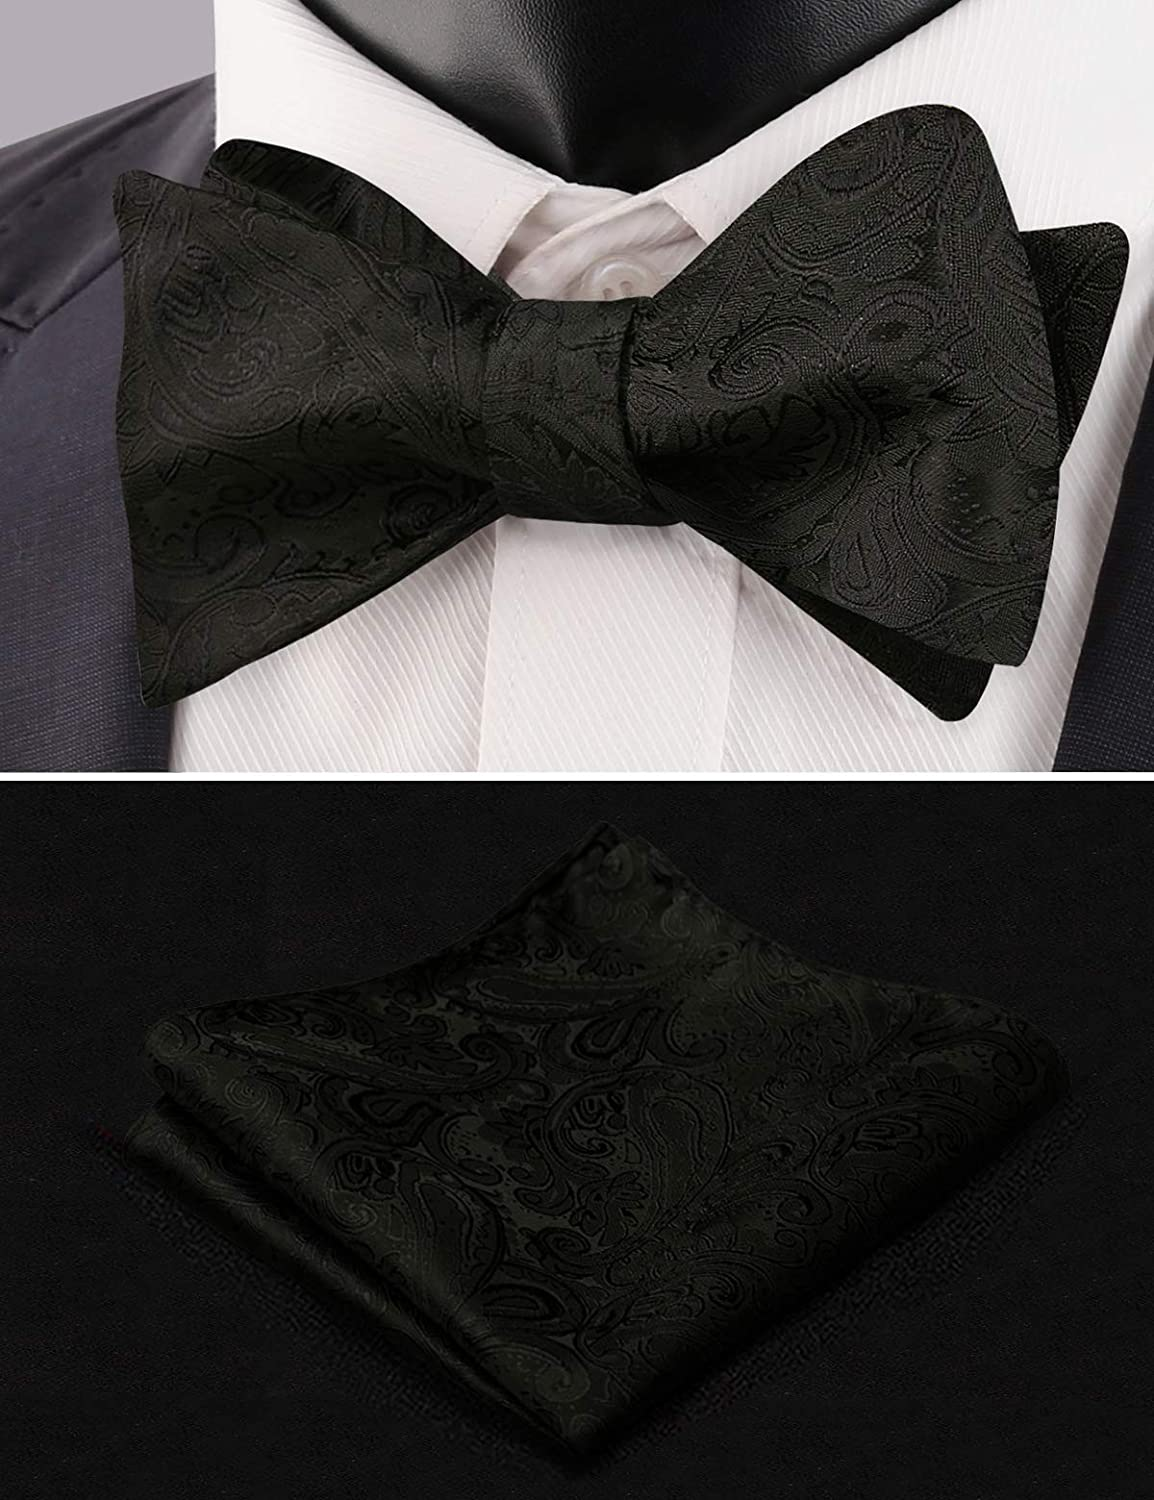 723132d8b Amazon.com  Alizeal Mens Adjustable Floral Paisley Self-tied Bow Tie ...